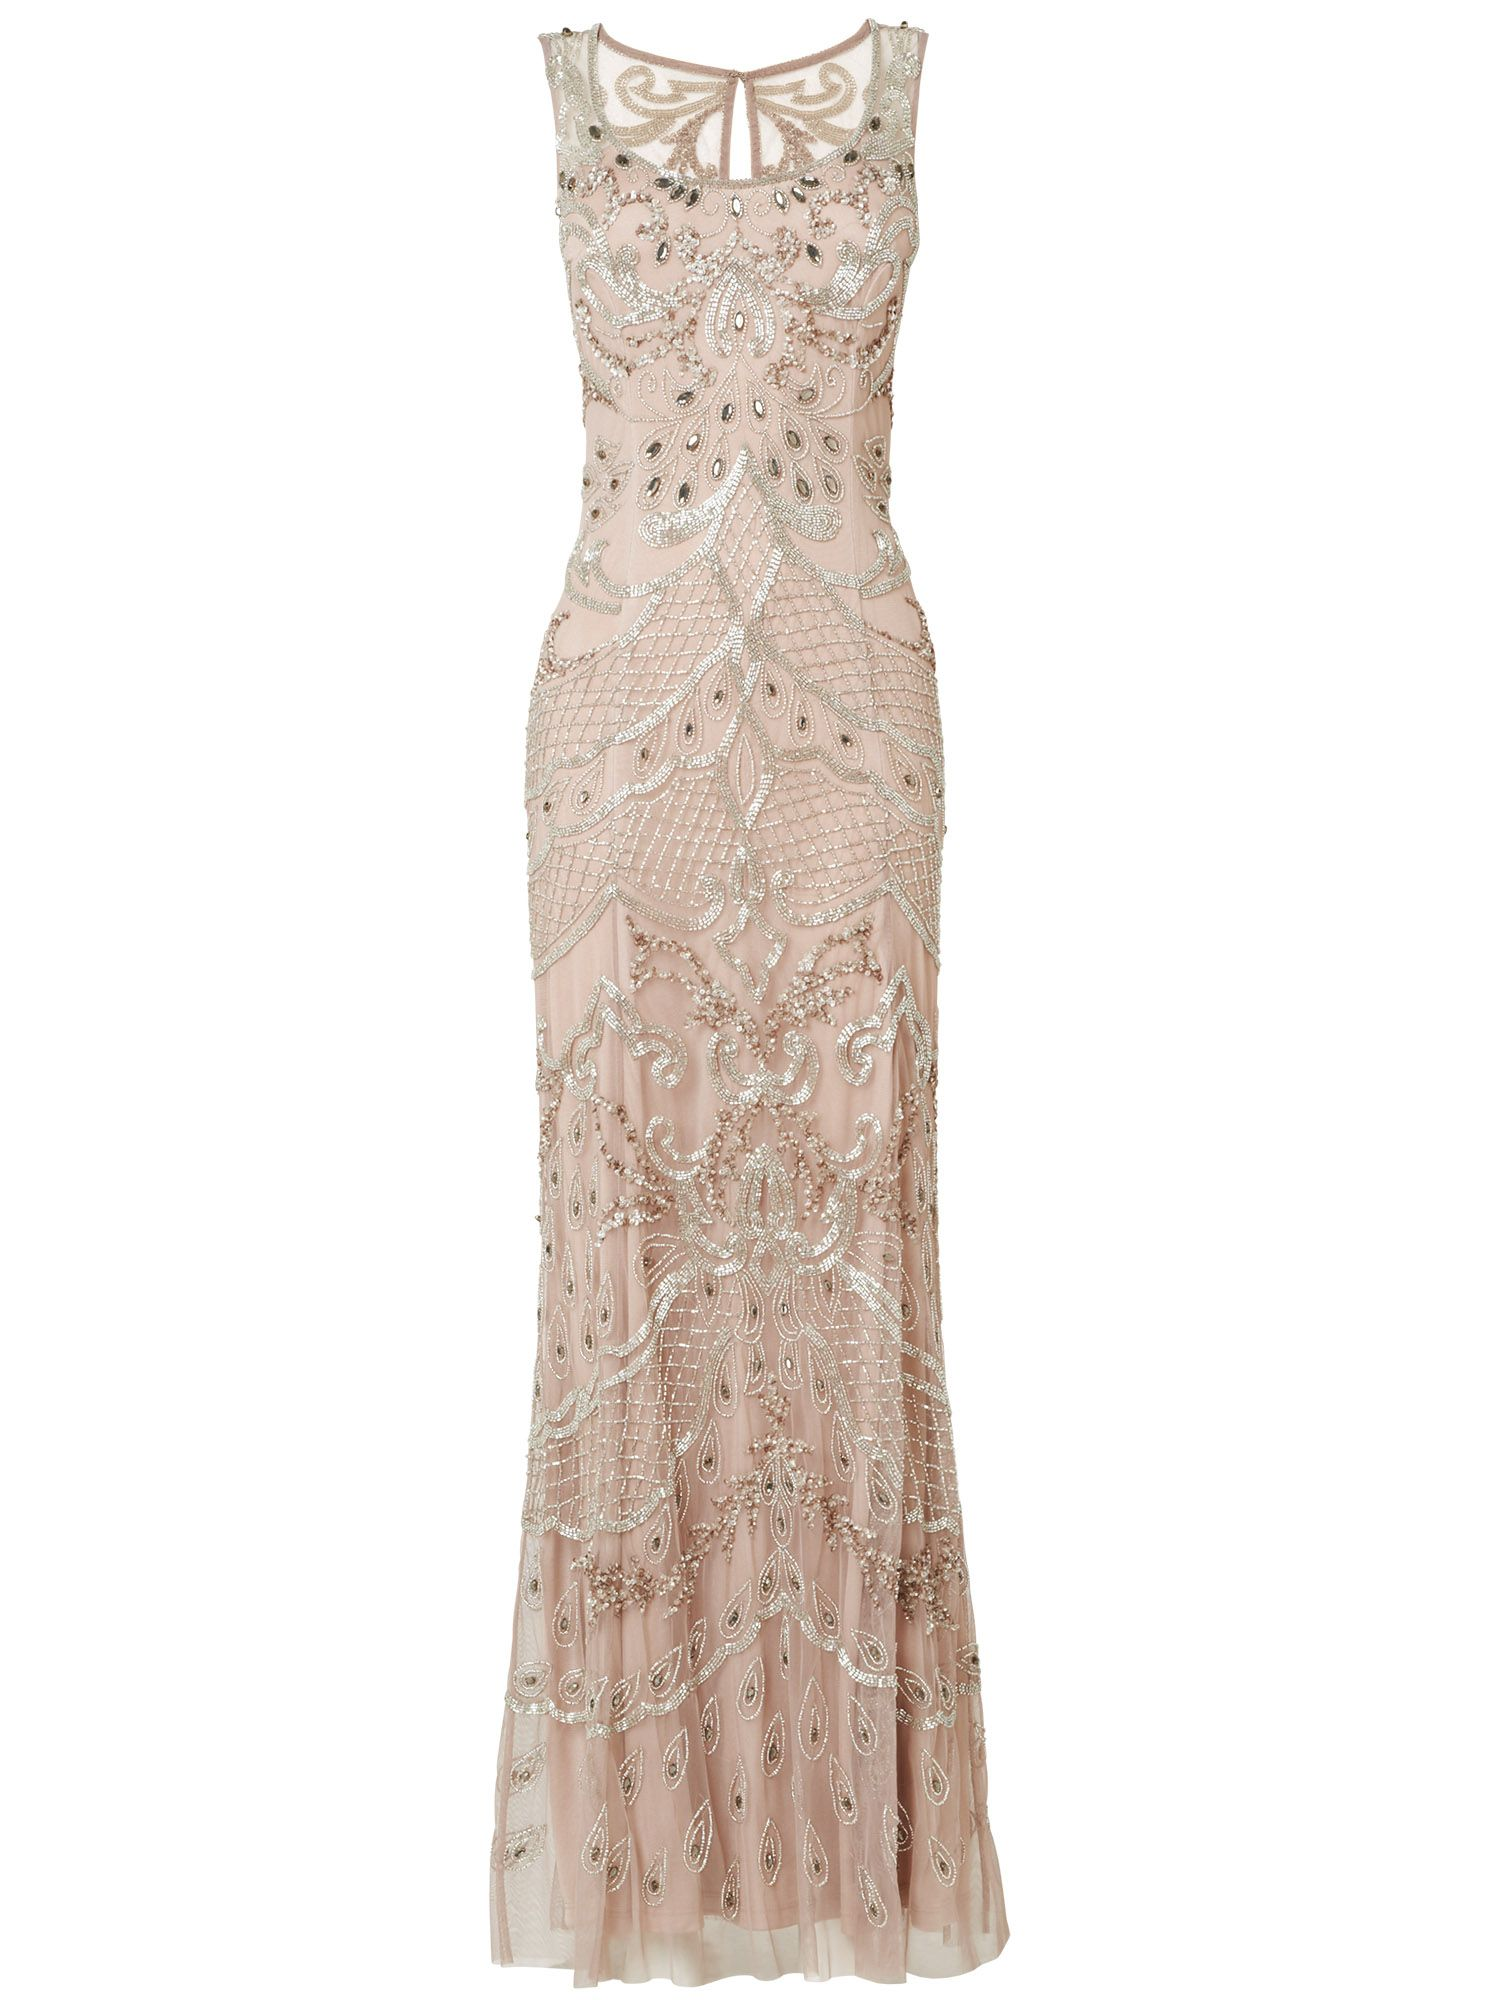 Alessandra embellished full length dress